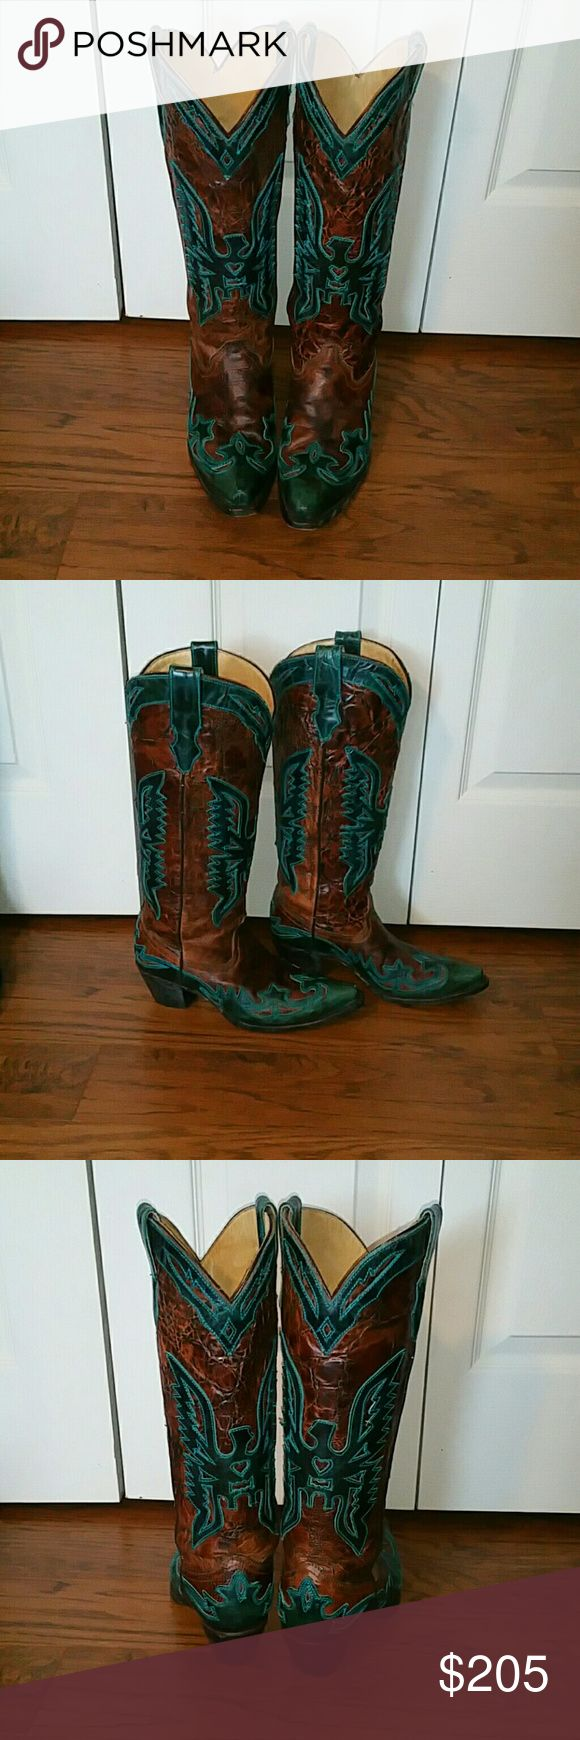 CORRAL cowboy eagle thunderbird ariat boots Corral boots in good used condition...show signs of wear...have scuffs and scratches....no major gouges...**ITEM AS IS**SALE FINAL**NO RETURNS** Corral Shoes